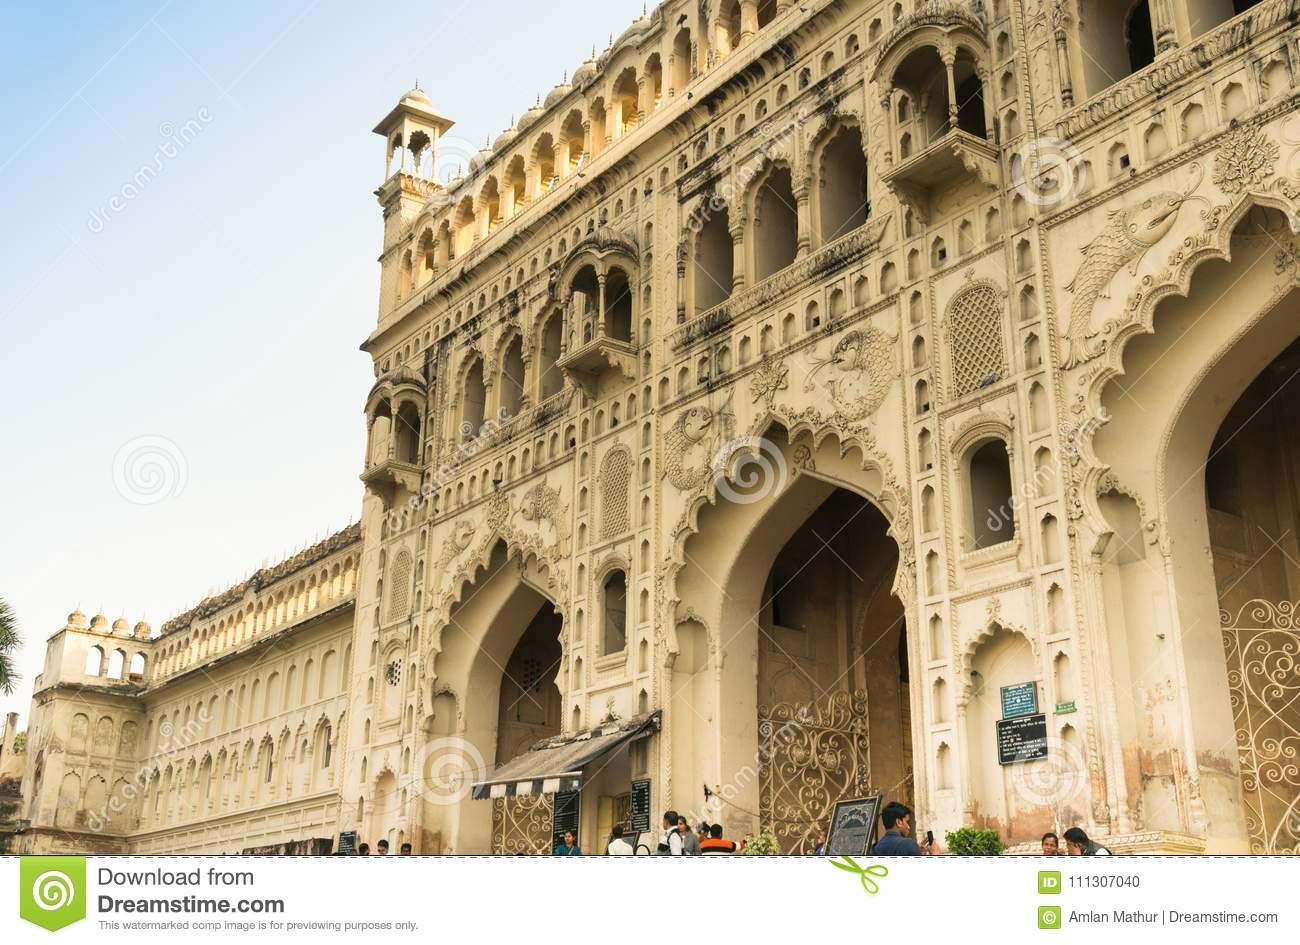 Entrance gate to the Bara Imambara lucknow India